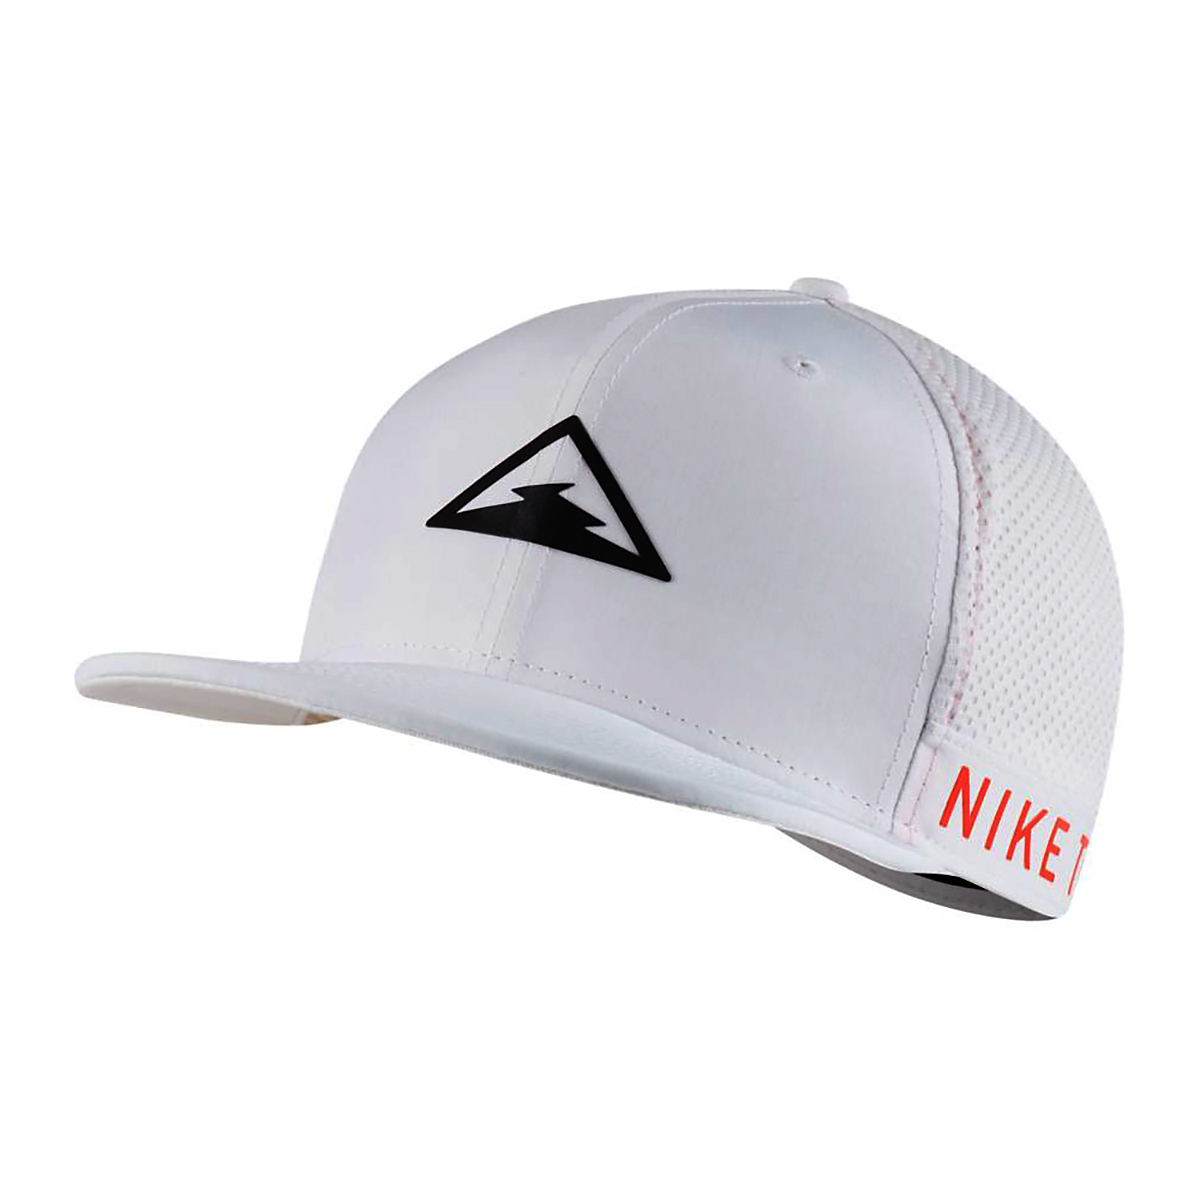 Nike Dry Pro Cao Trail  - Color: White, White, large, image 1